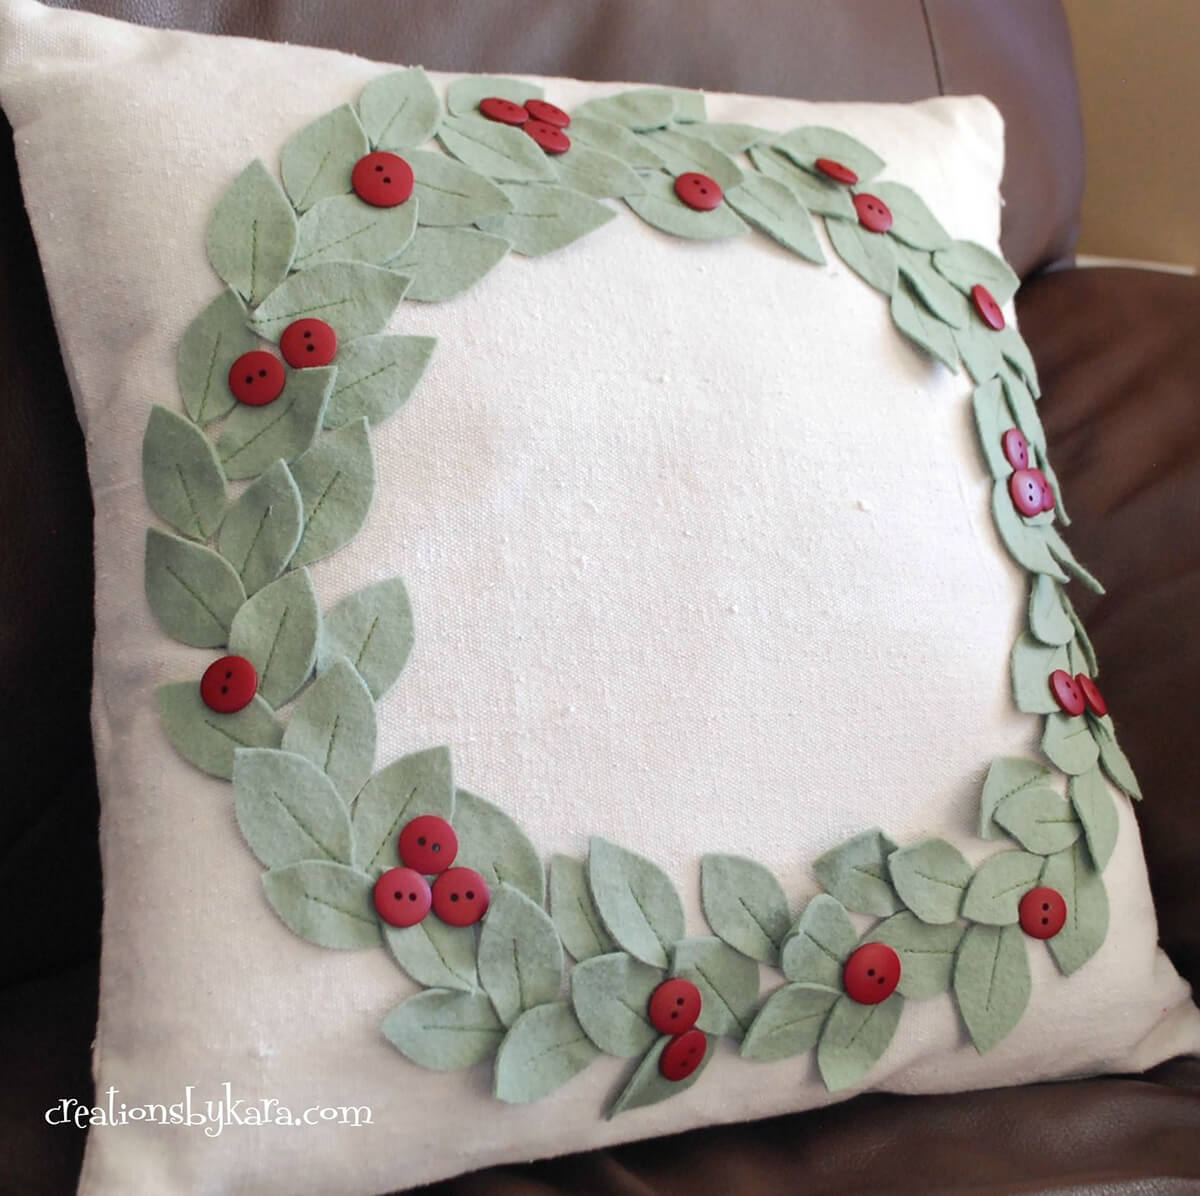 Festive Felt and Buttons Holly Wreath Pillow